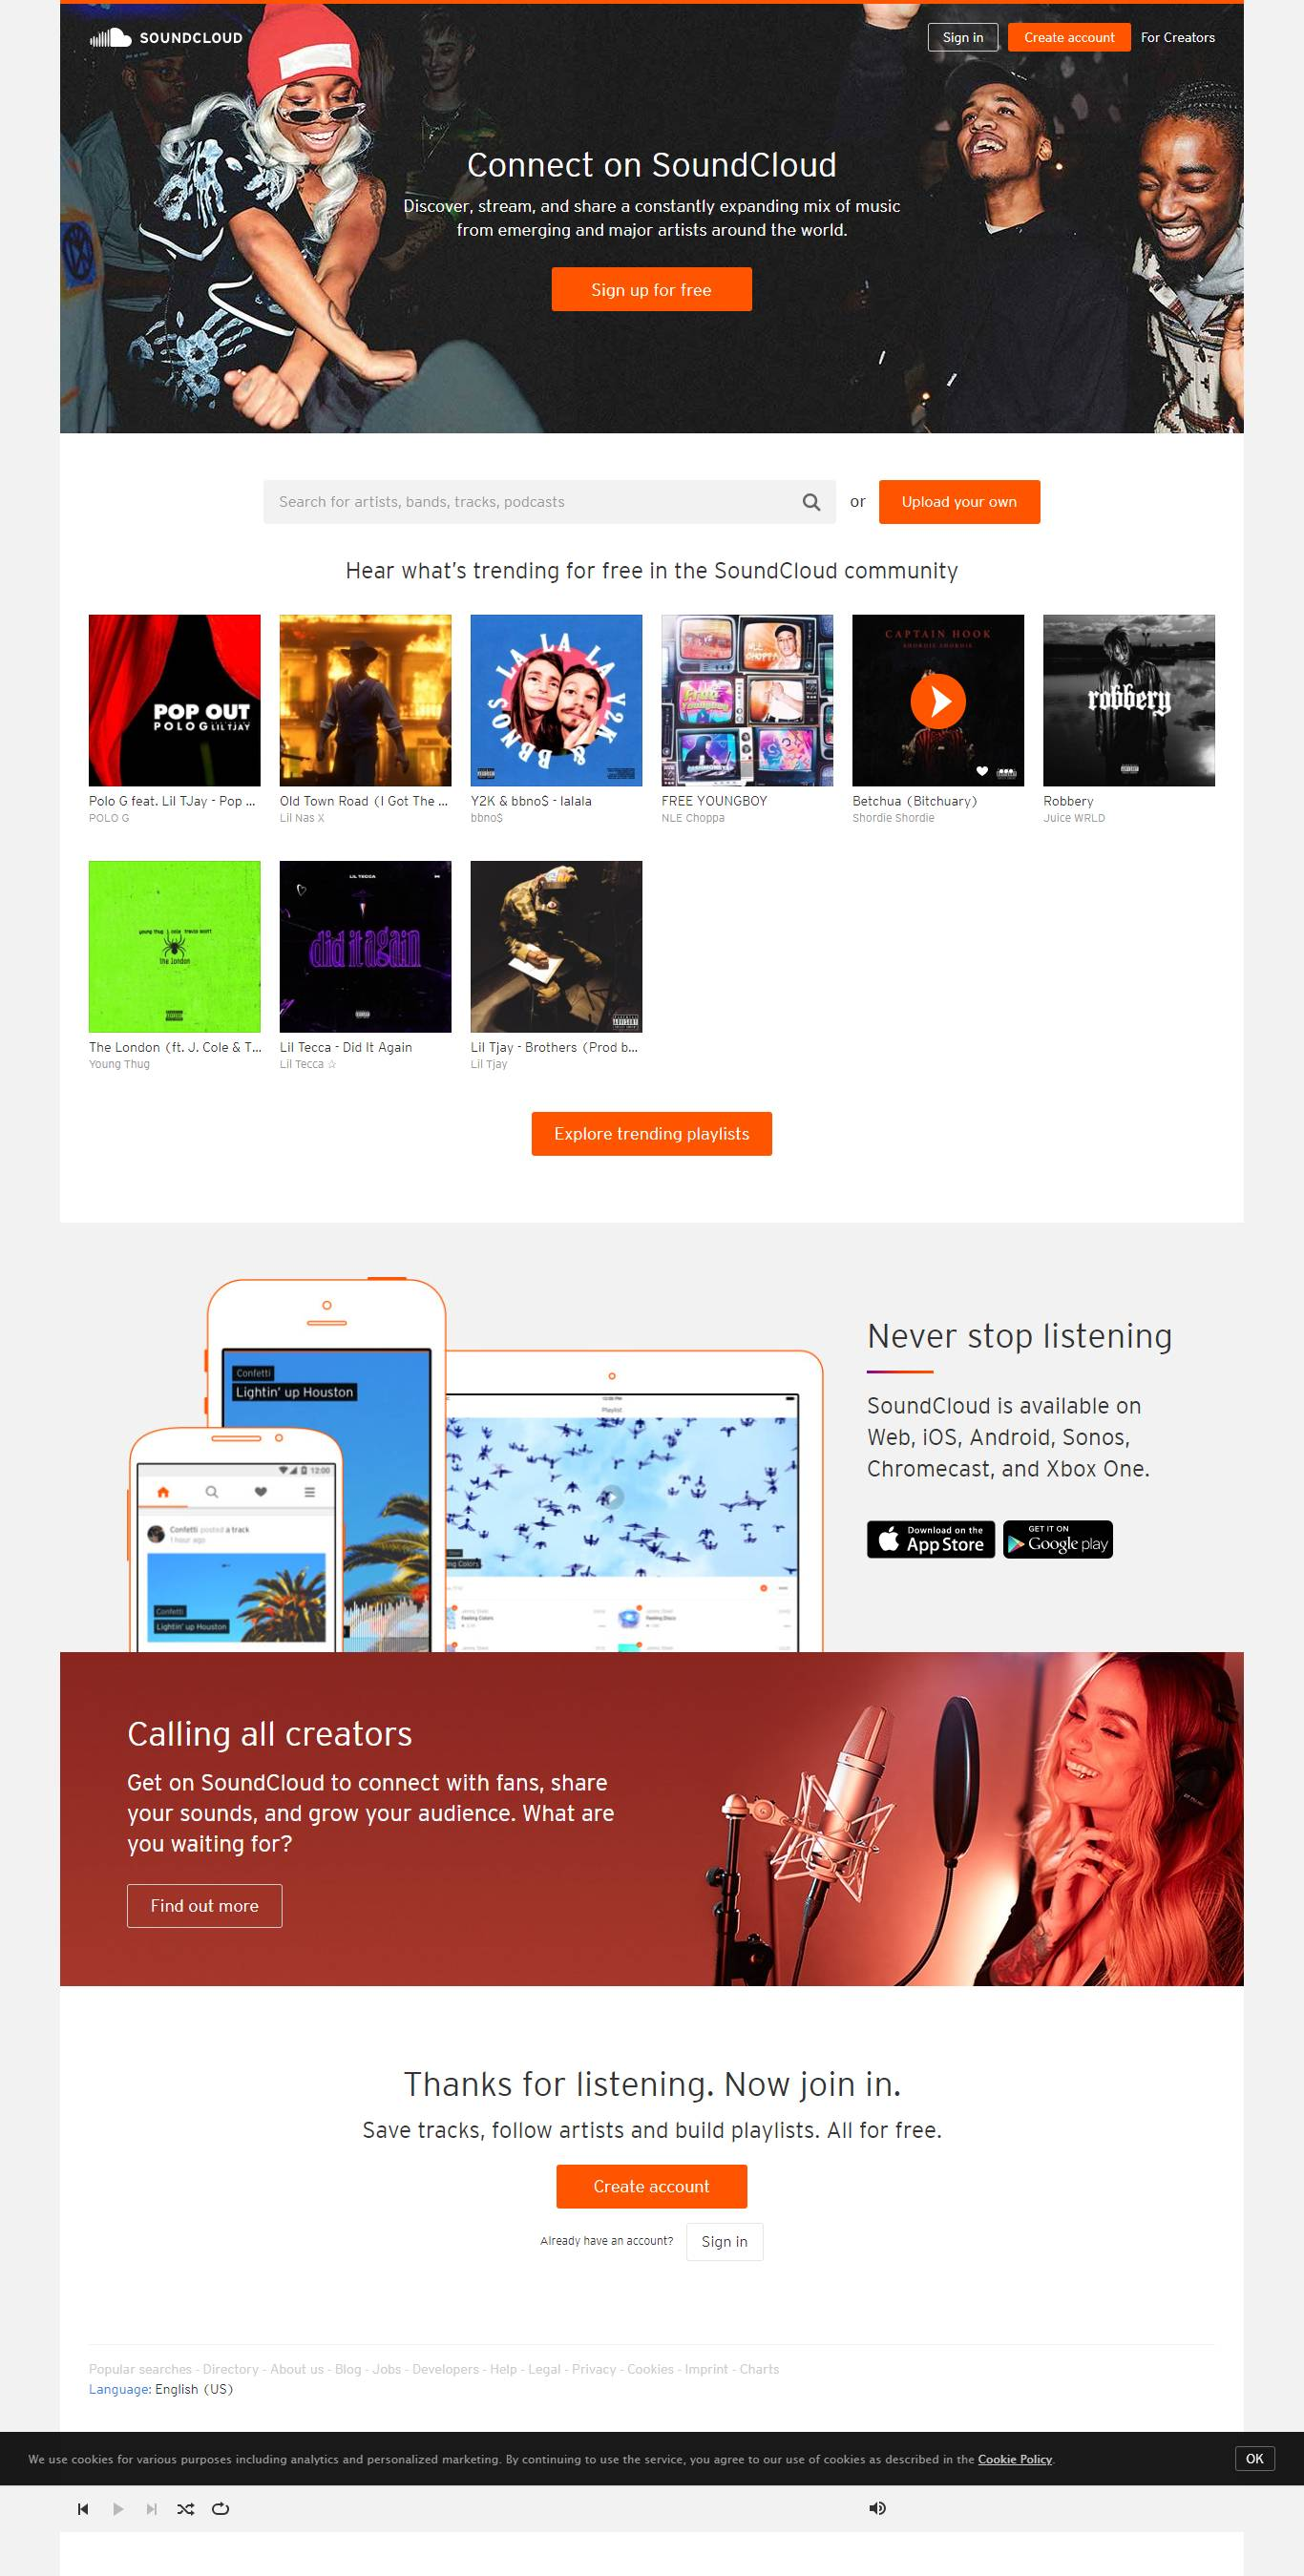 SoundCloud-Listen-to-free-music-and-podcasts-on-SoundCloud (1)